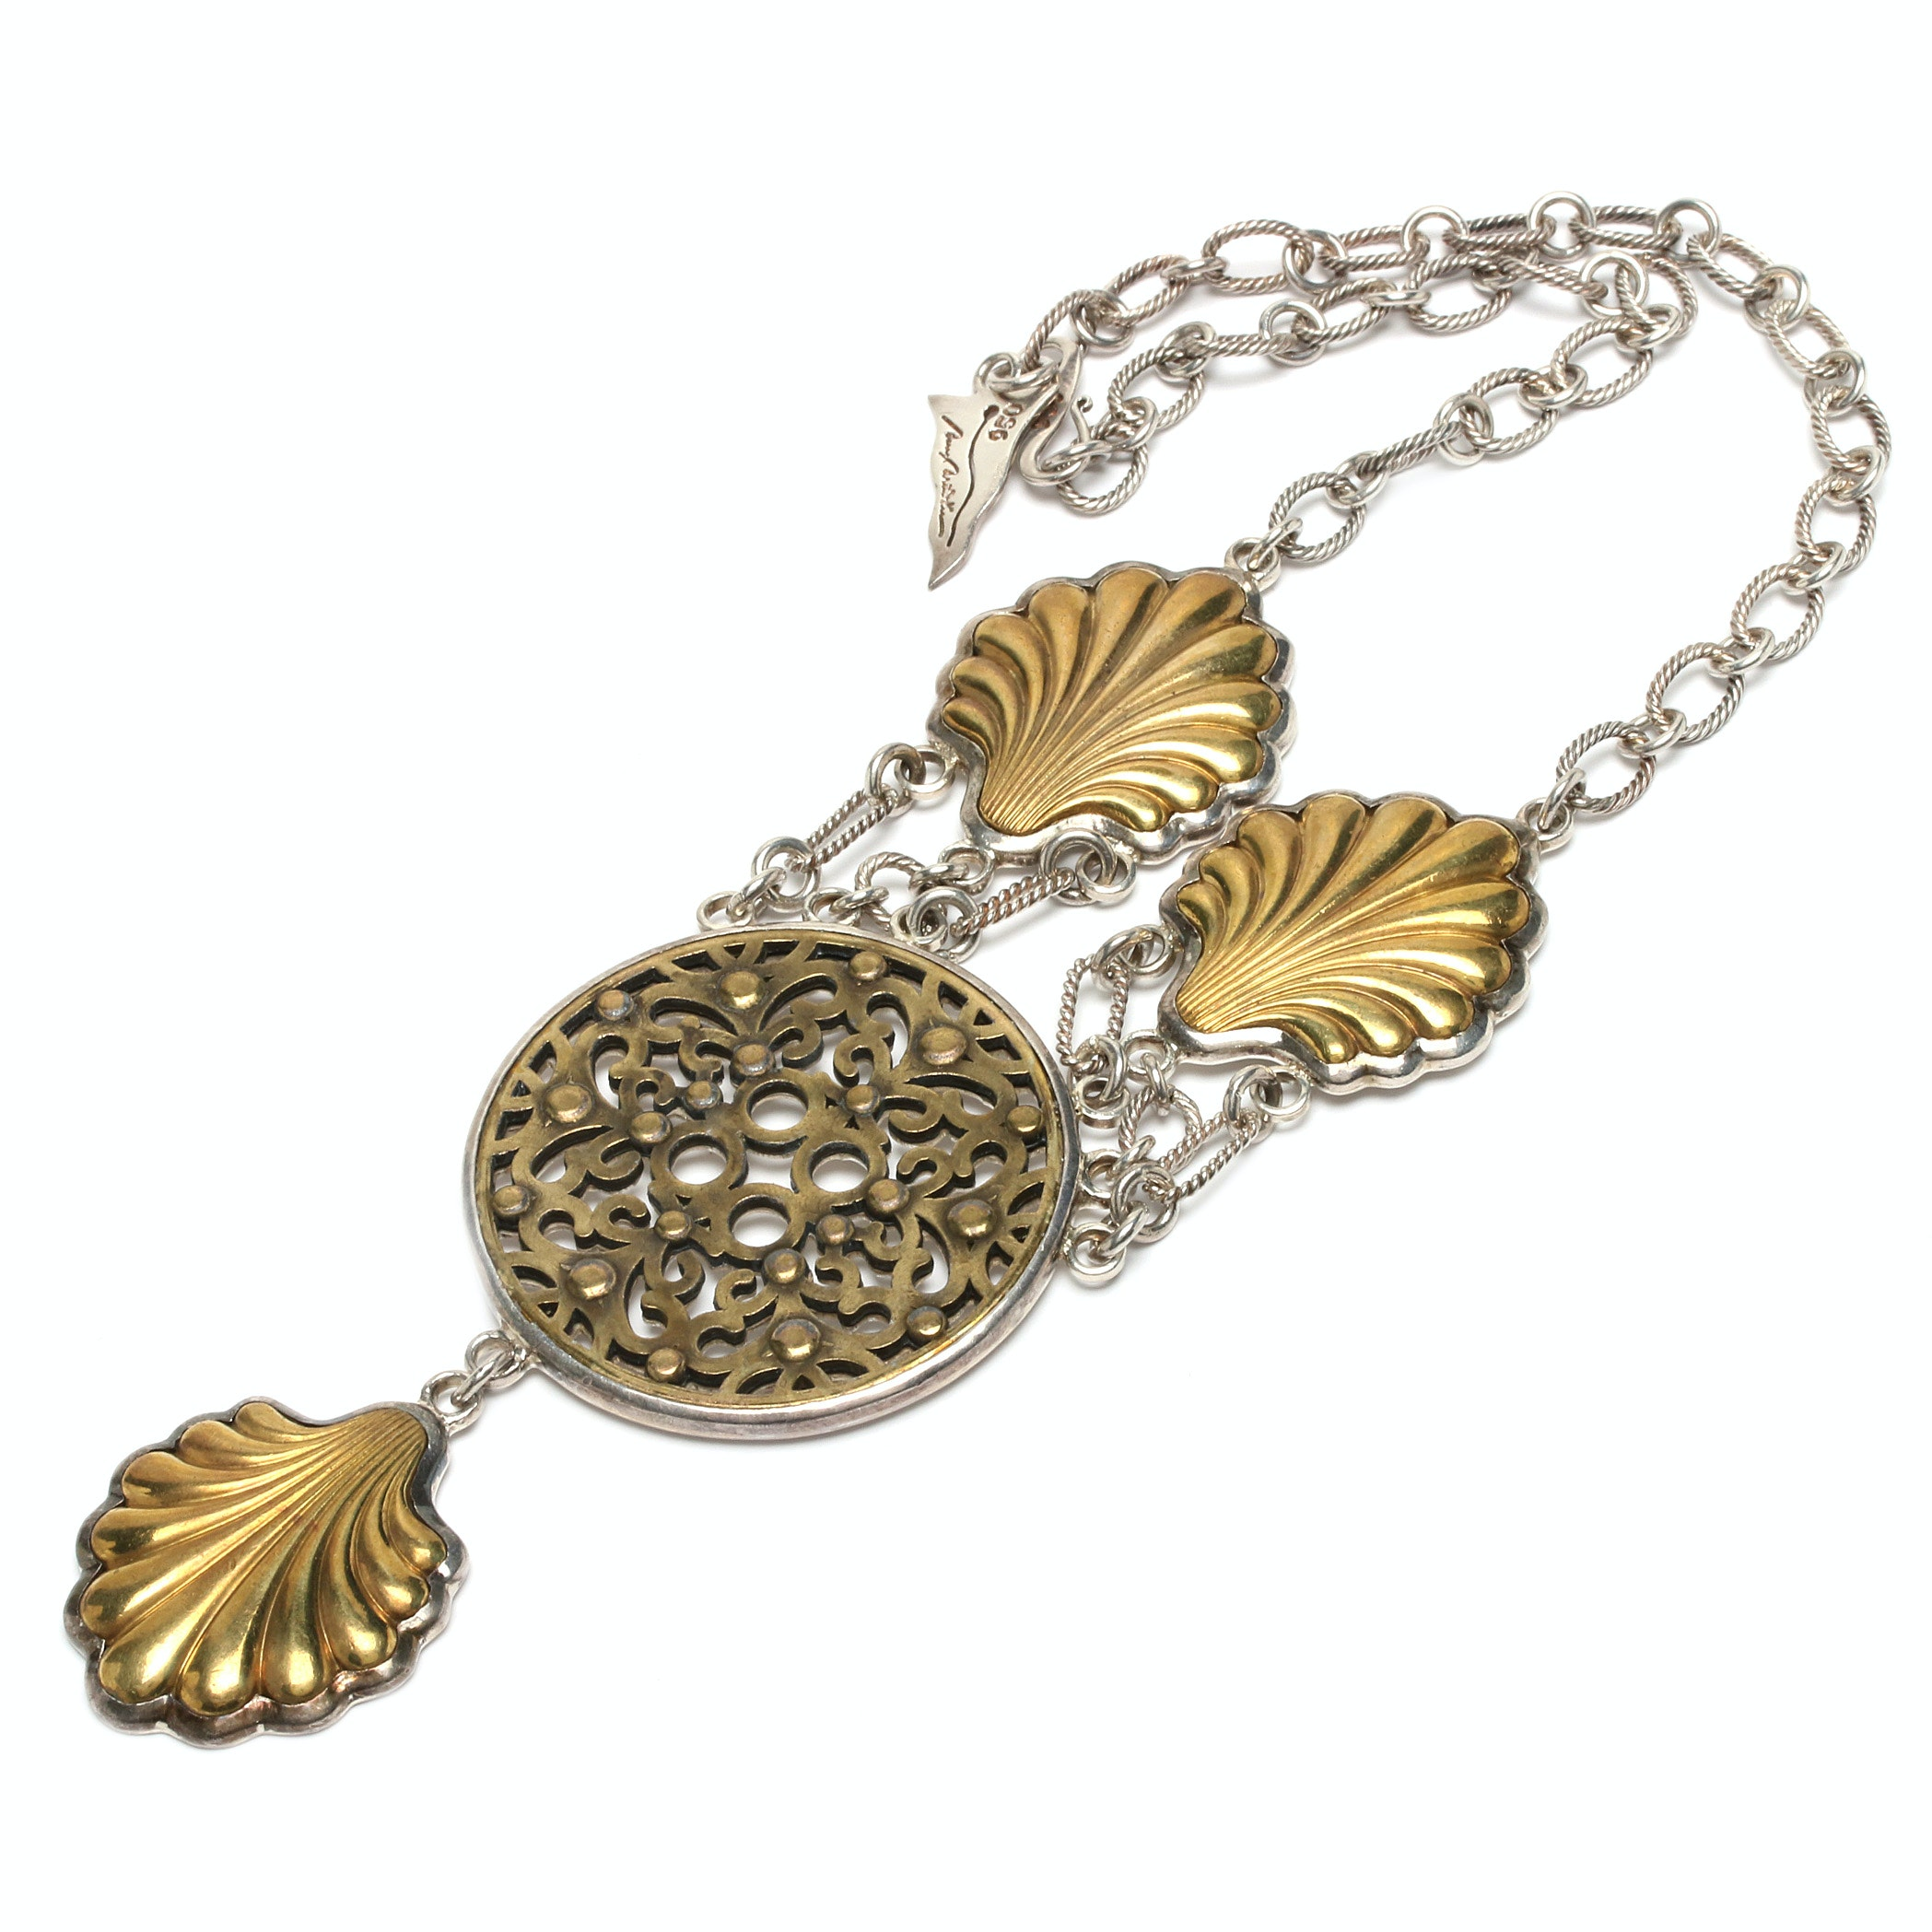 Barry Brinker 950 Silver and Brass Necklace